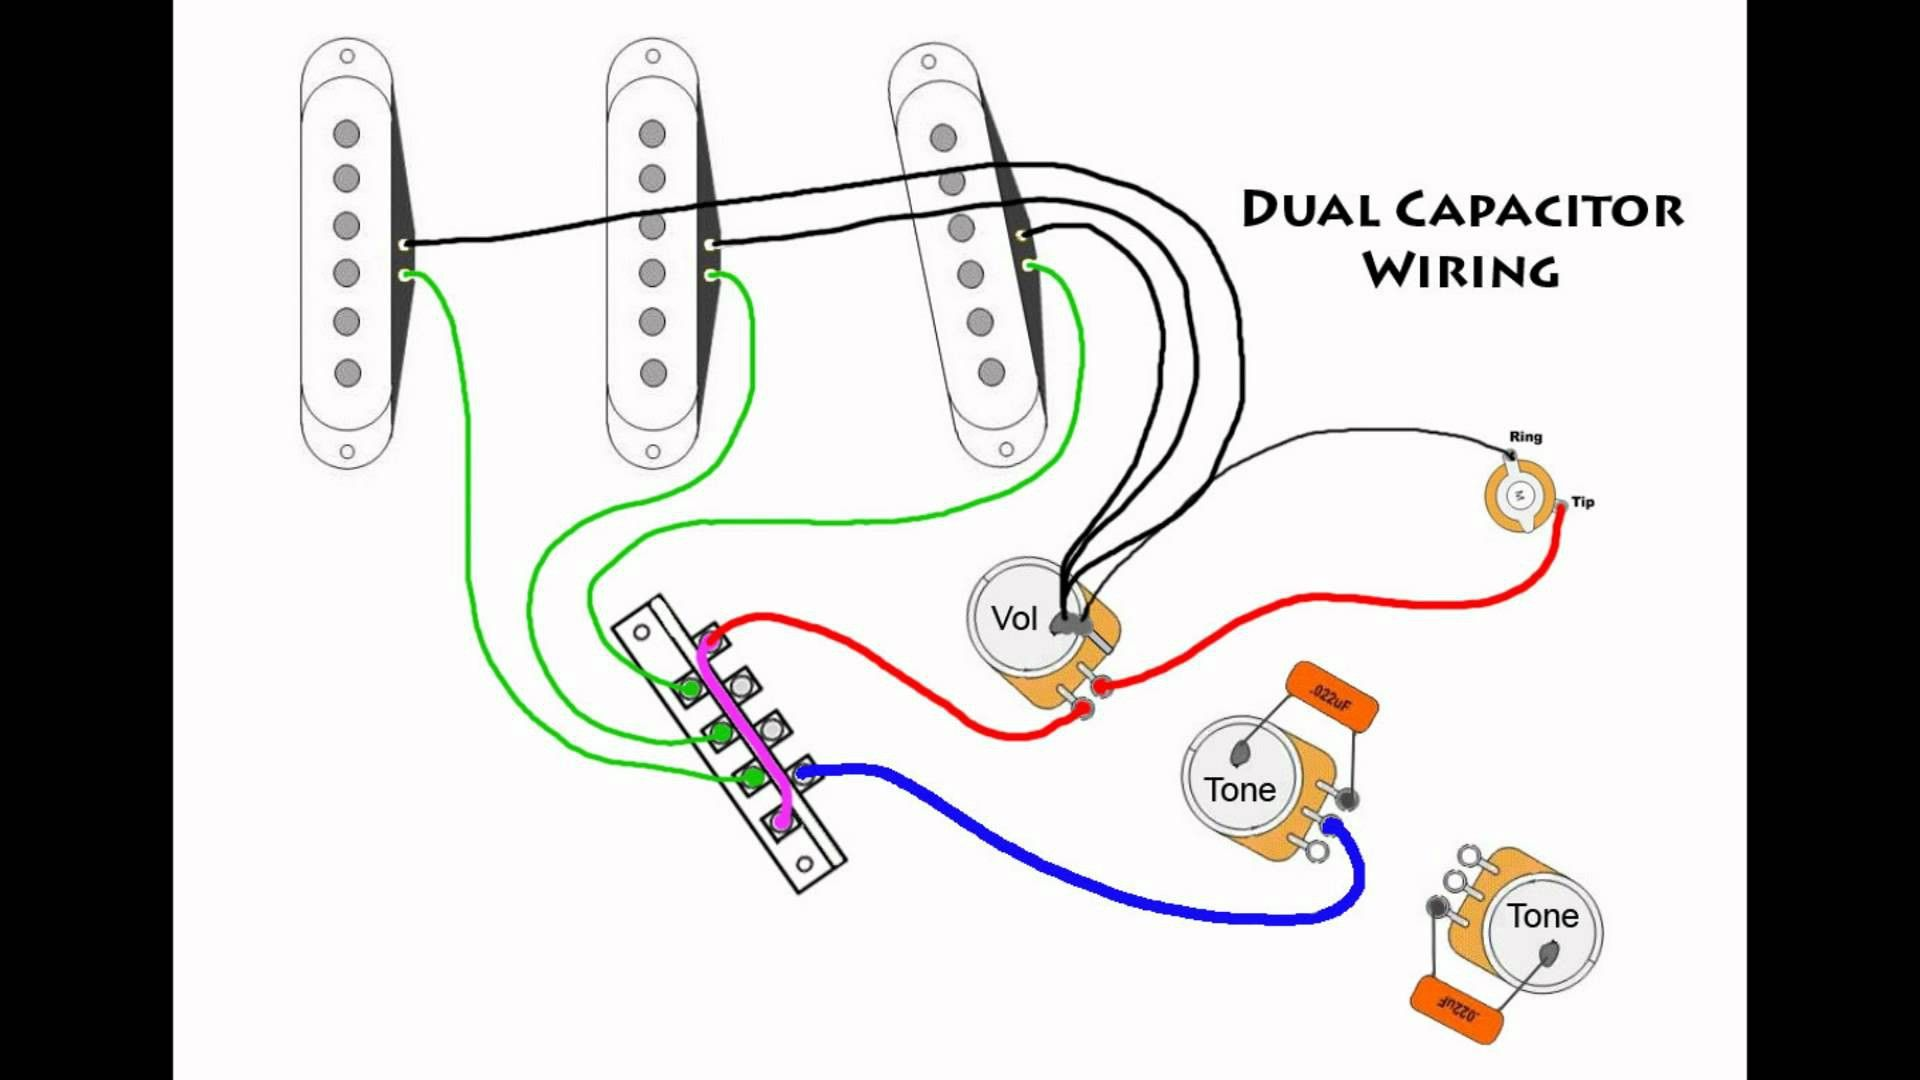 medium resolution of fender stratocaster wiring diagram best of strat throughout diagramsfender stratocaster wiring diagram best of strat throughout